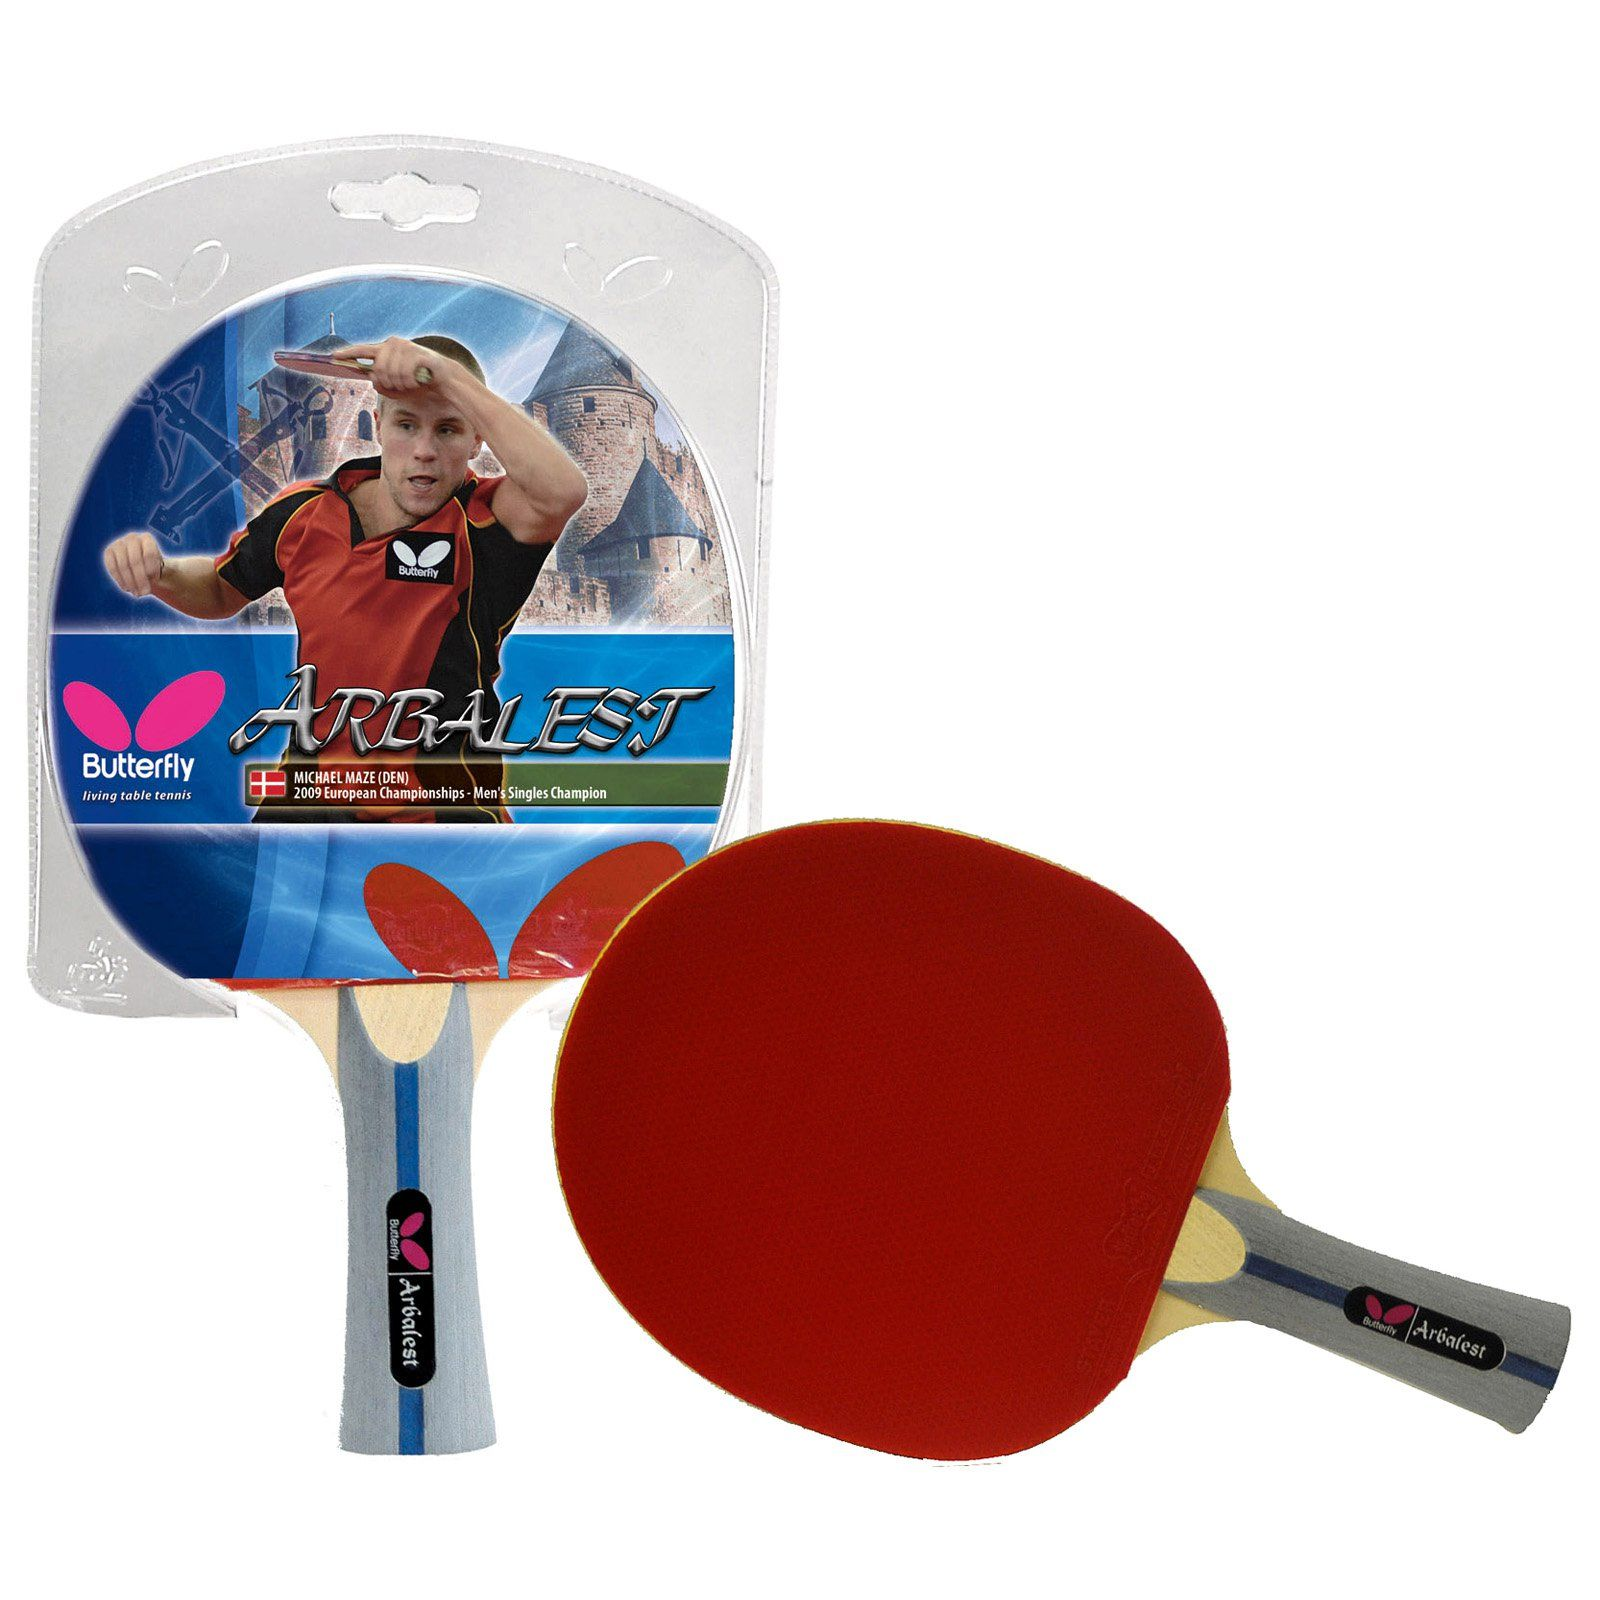 Butterfly Table Tennis Paddles | Ping pong | Pinterest | Butterfly ...